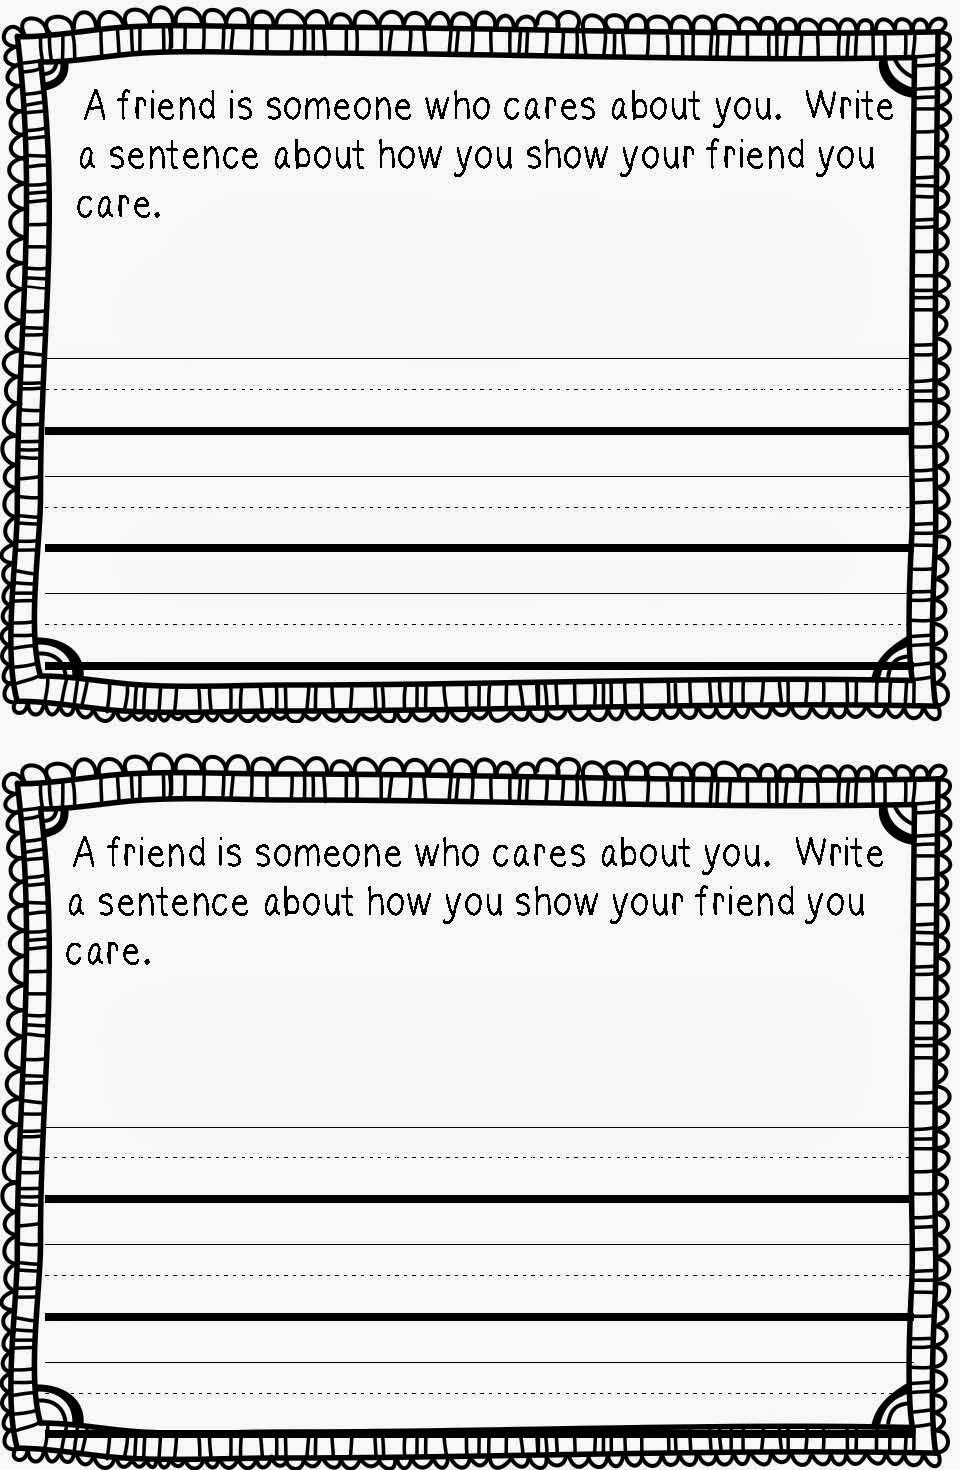 http://www.teacherspayteachers.com/Product/First-Grade-February-Printables-1094562